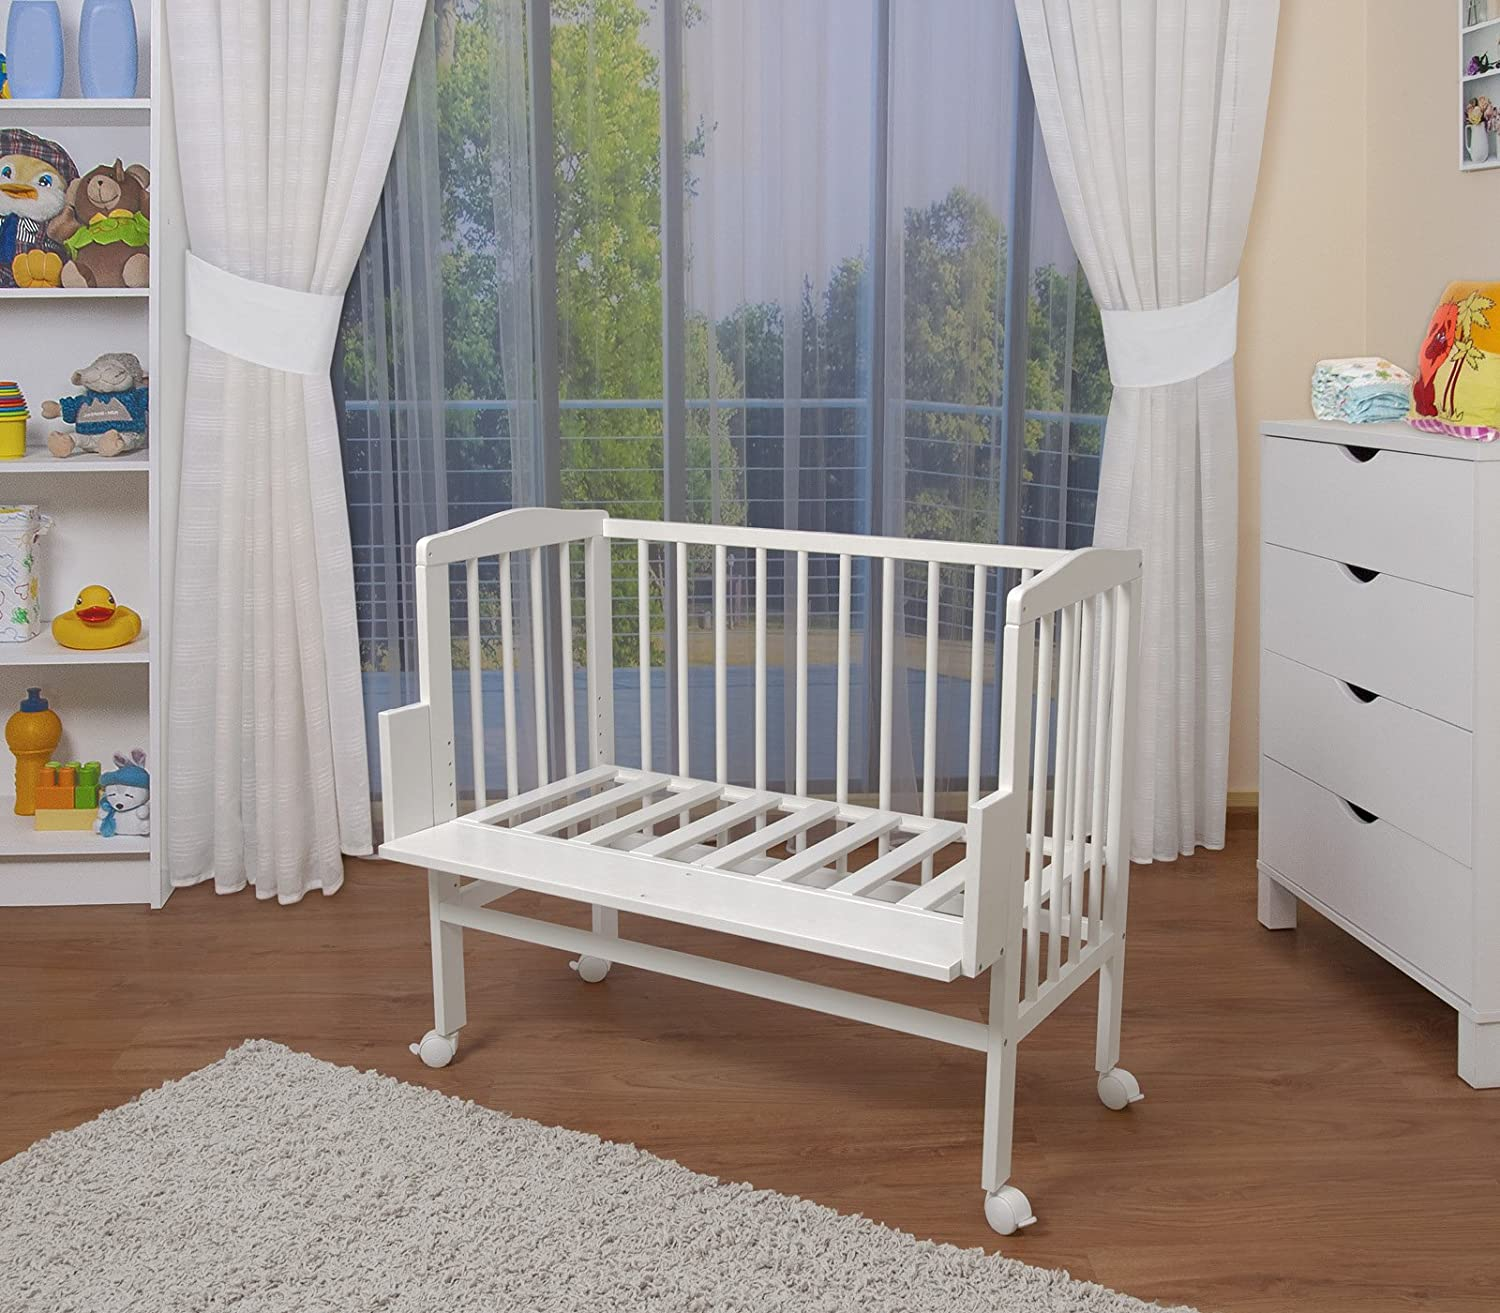 WALDIN Baby Bedside Cot Co-Sleeping height adjustable with bumper,16 models available, white painted,textile colour white: Amazon.co.uk: Baby